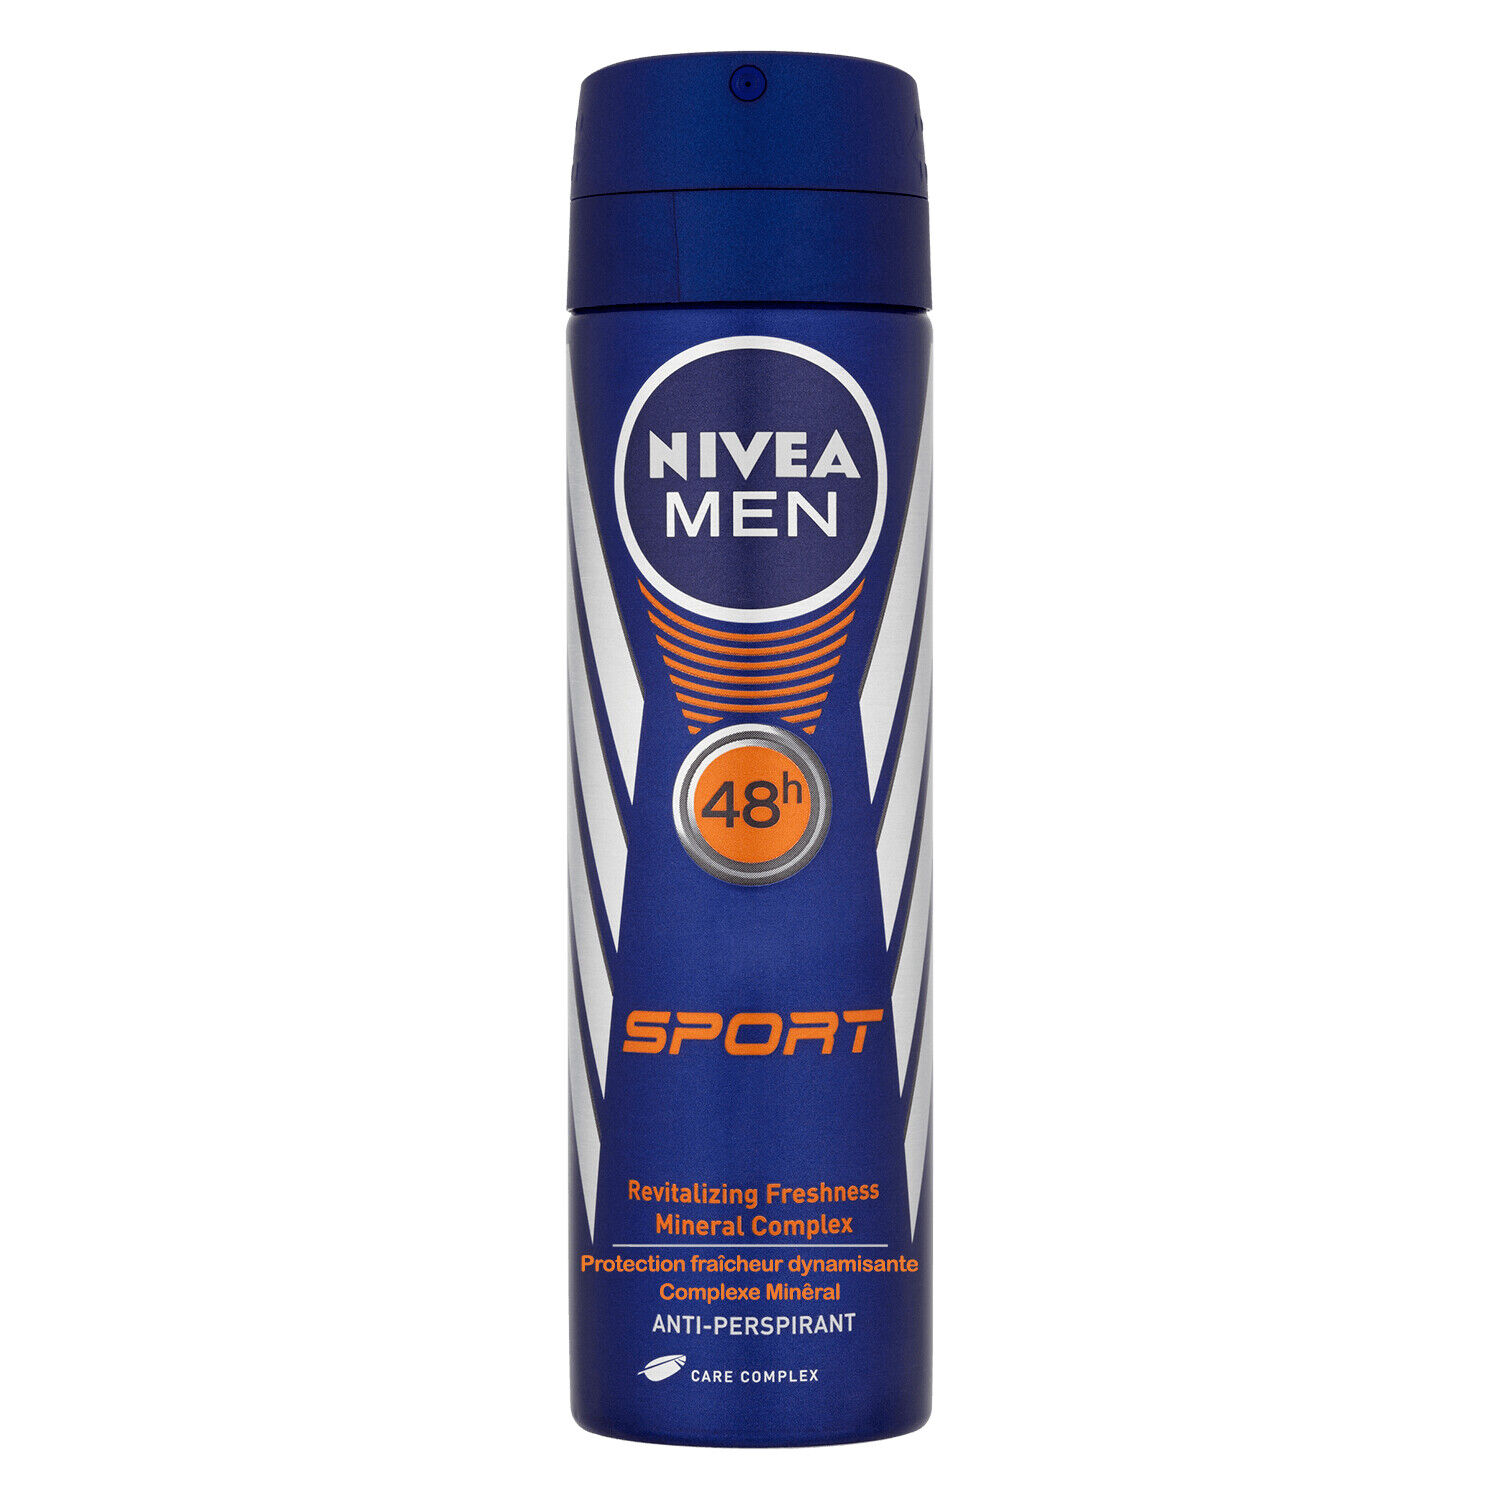 3 x Nivea MEN SPORT Mineral Complex Body Spray Deodorant Ant